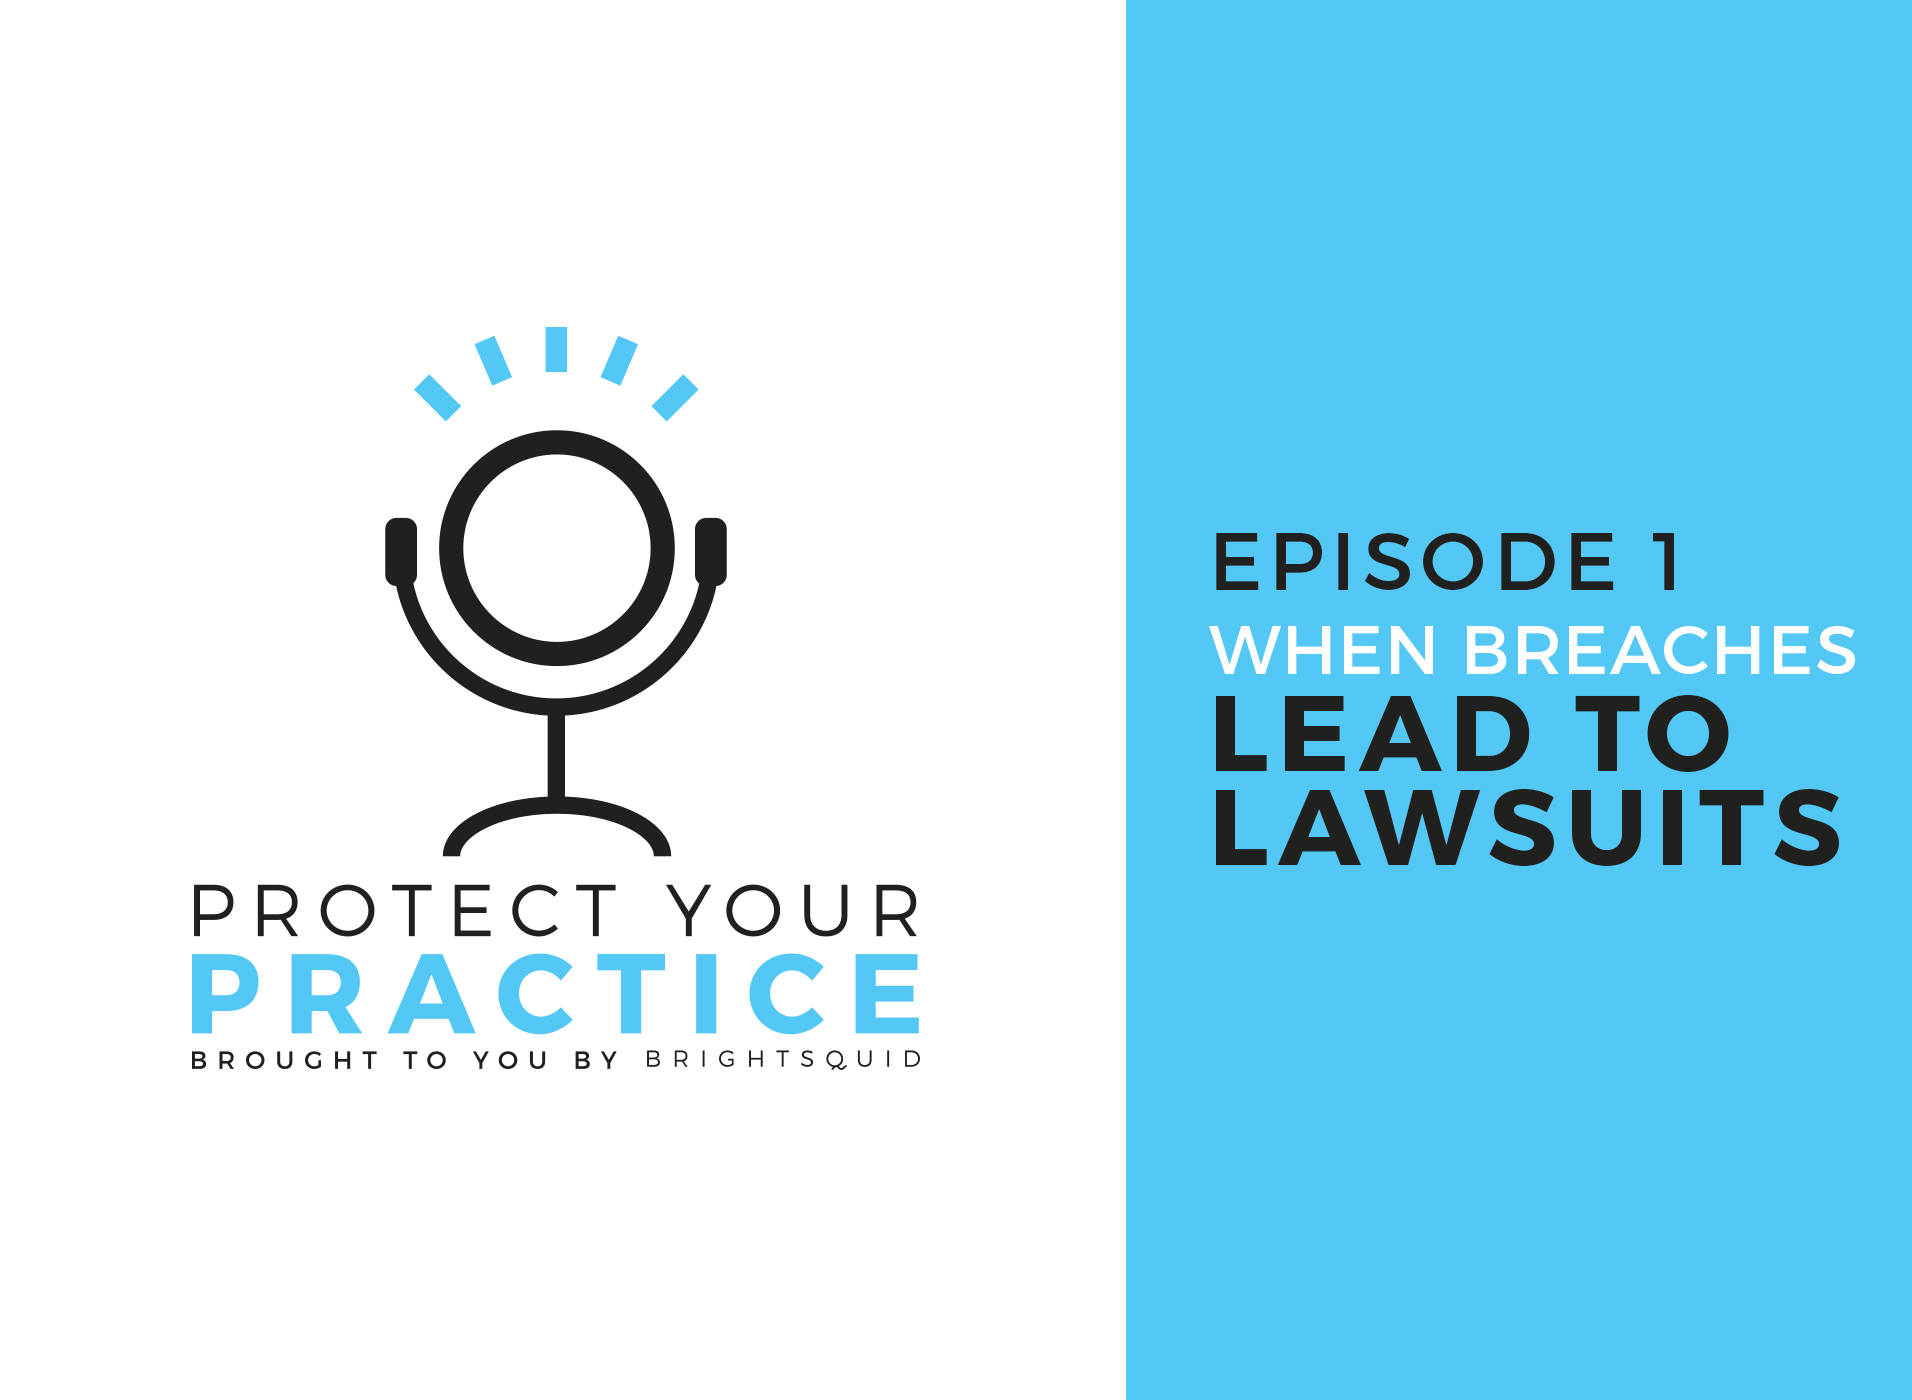 Protect Your Practice Episode 1: When Breaches Lead to Lawsuits